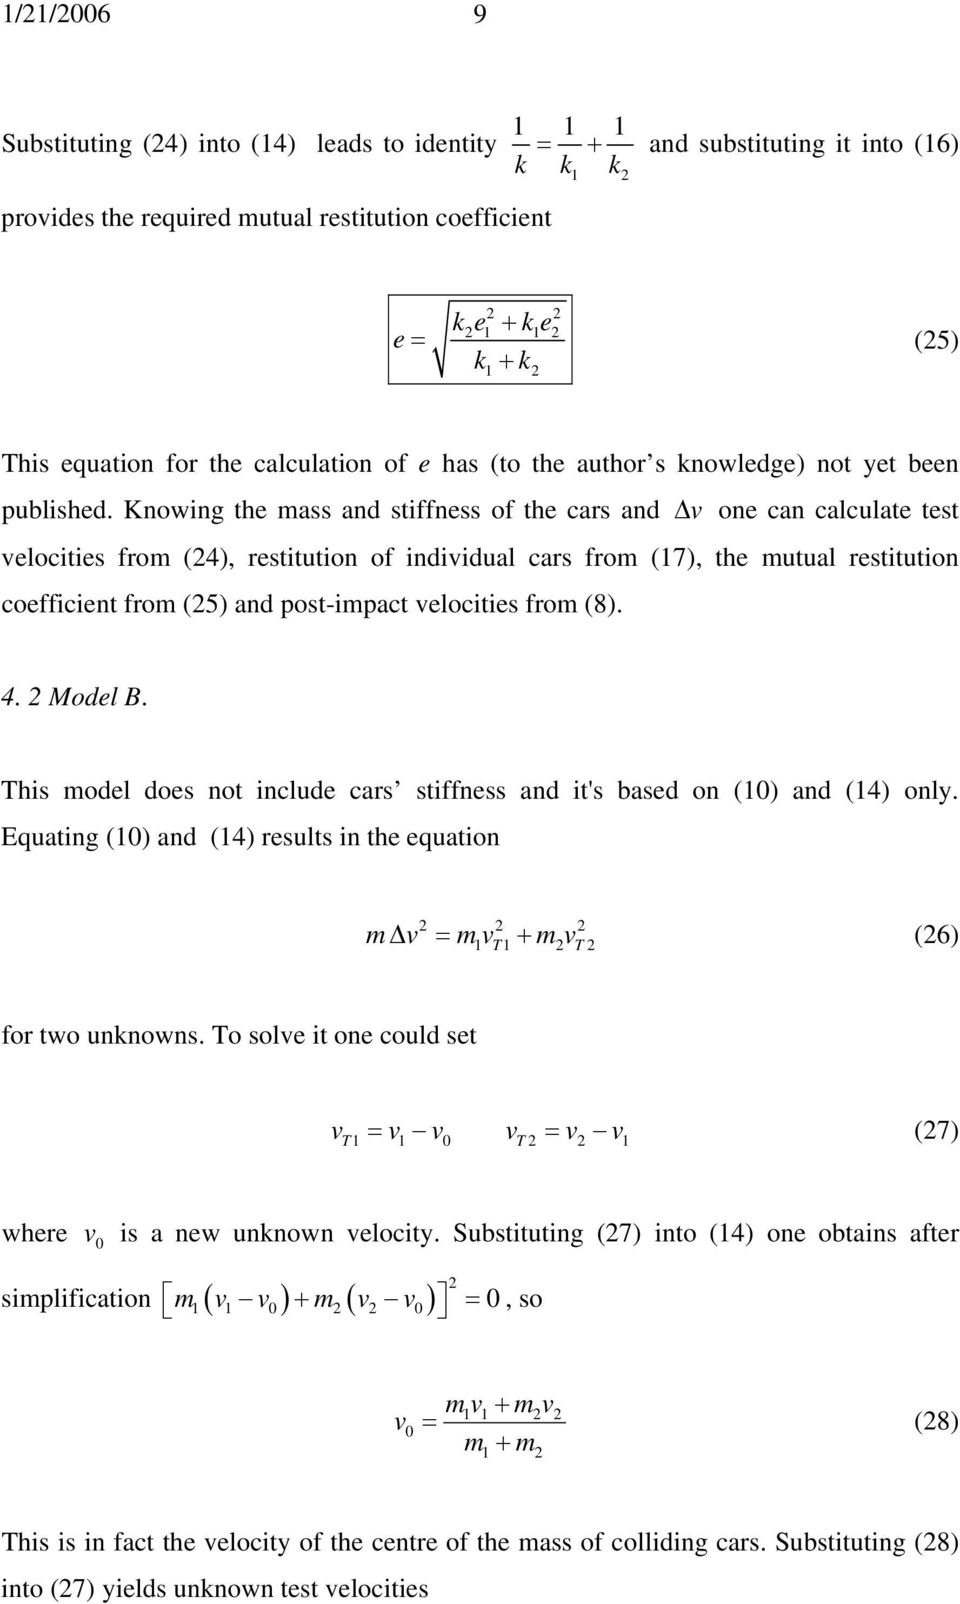 Knowing the ass and stiffness of the cars and Δ one can calculate test elocities fro (4), restitution of indiidual cars fro (7), the utual restitution coefficient fro (5) and post-ipact elocities fro